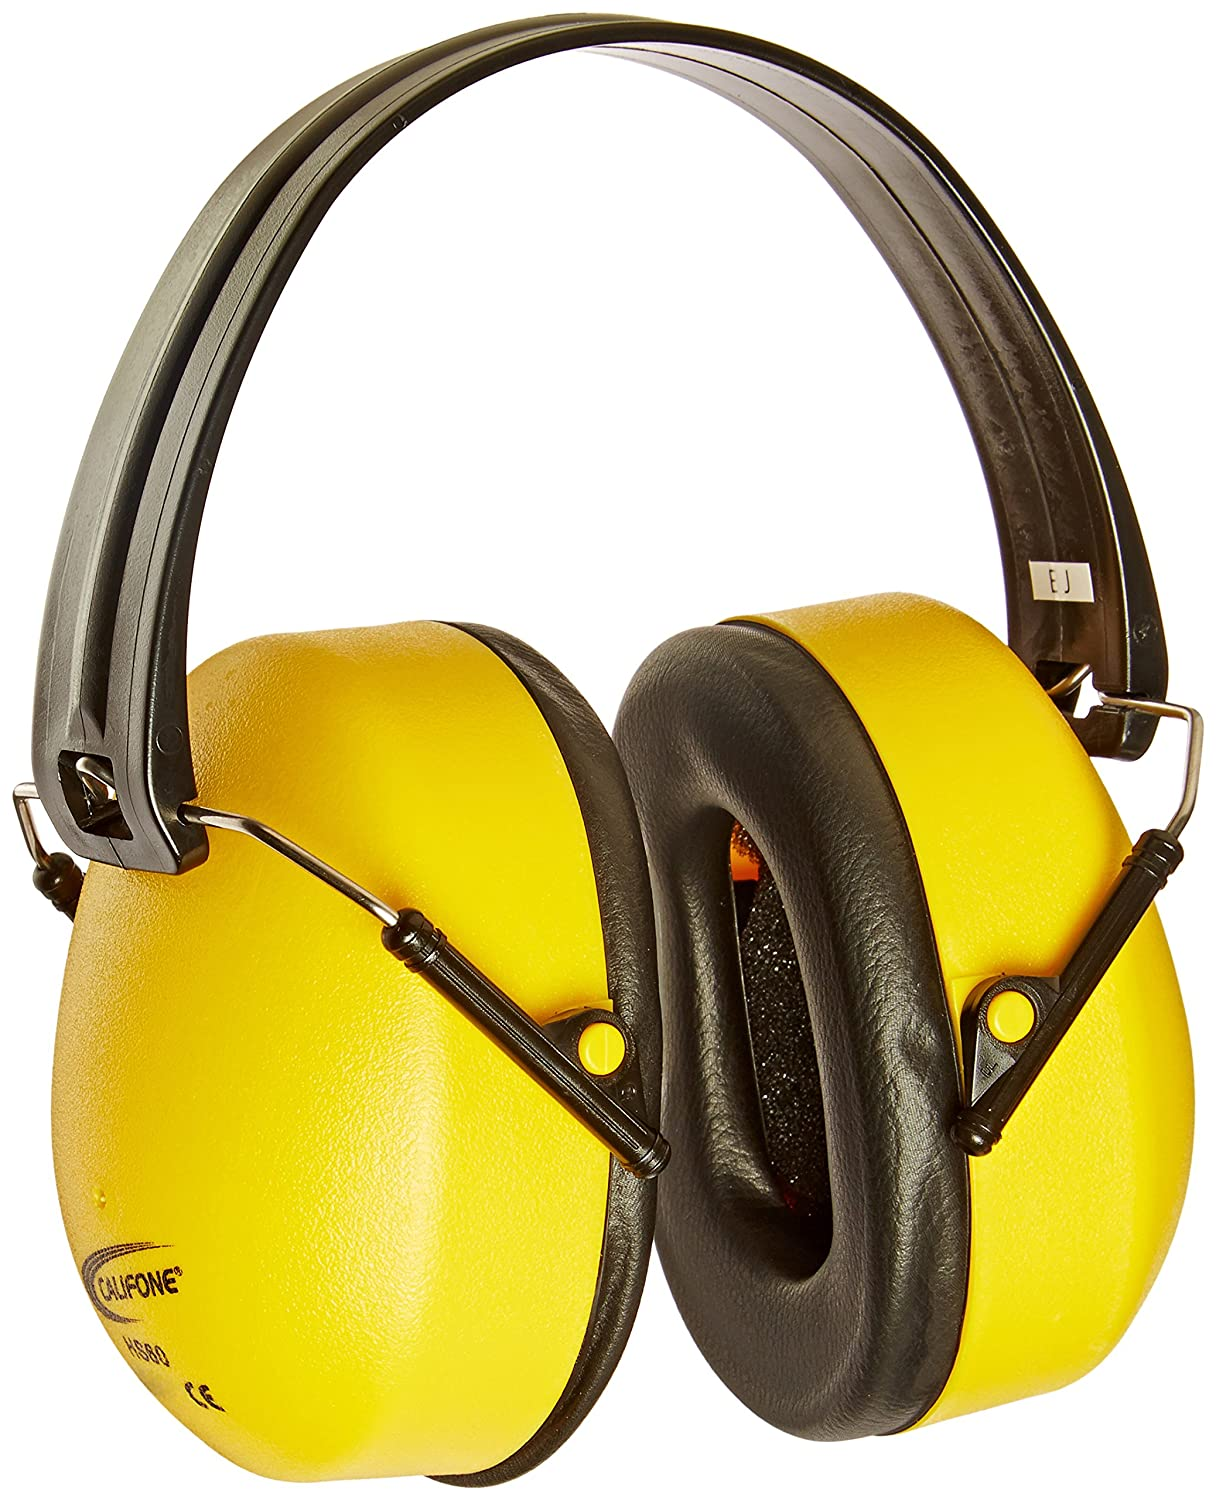 Califone Best Hearing Protectors, Bright Yellow Safety Color - 1301882